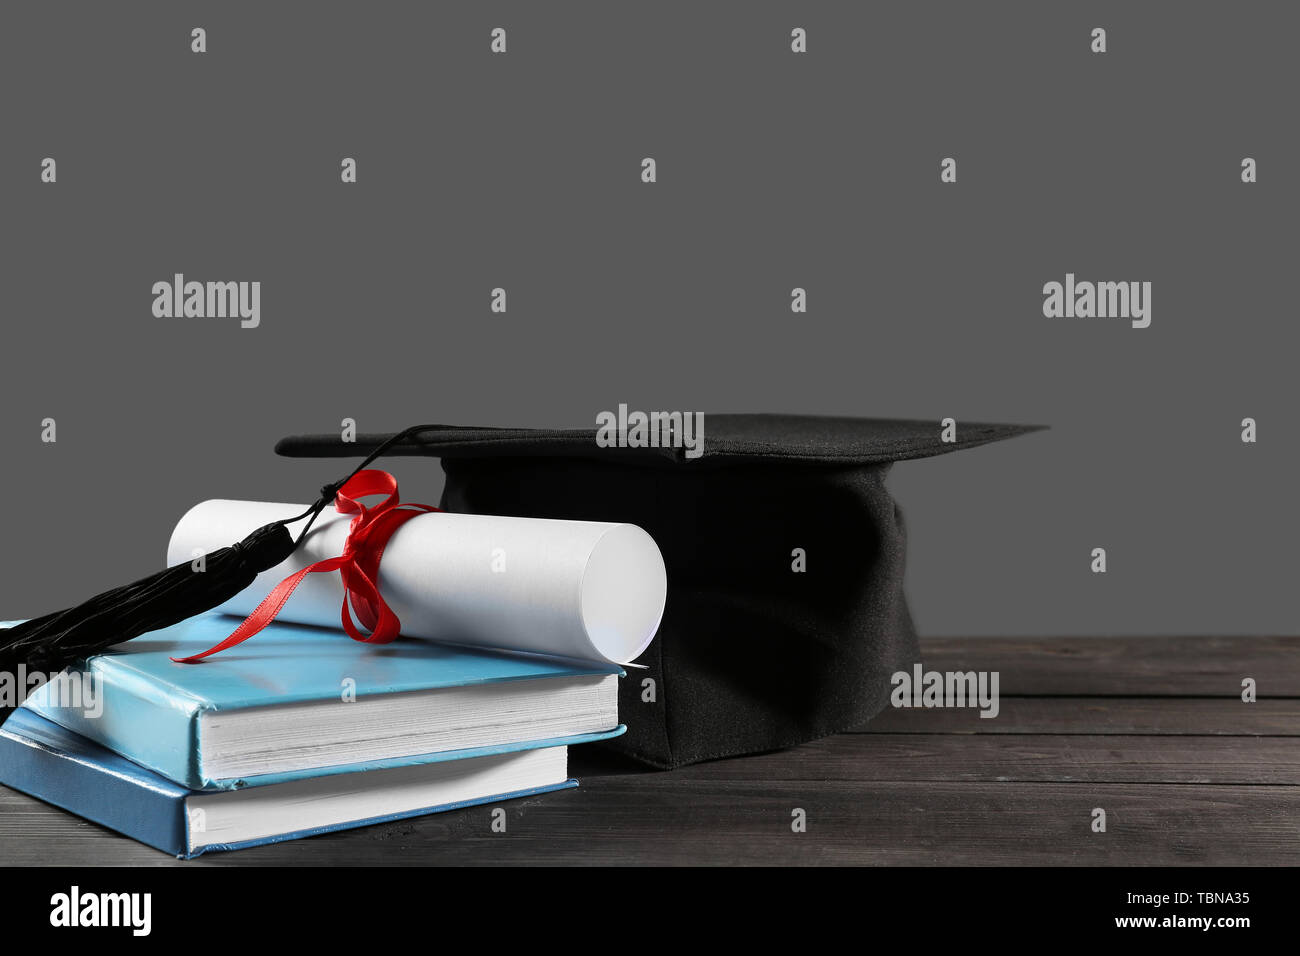 Mortar board, diploma and books on table. Concept of high school graduation - Stock Image